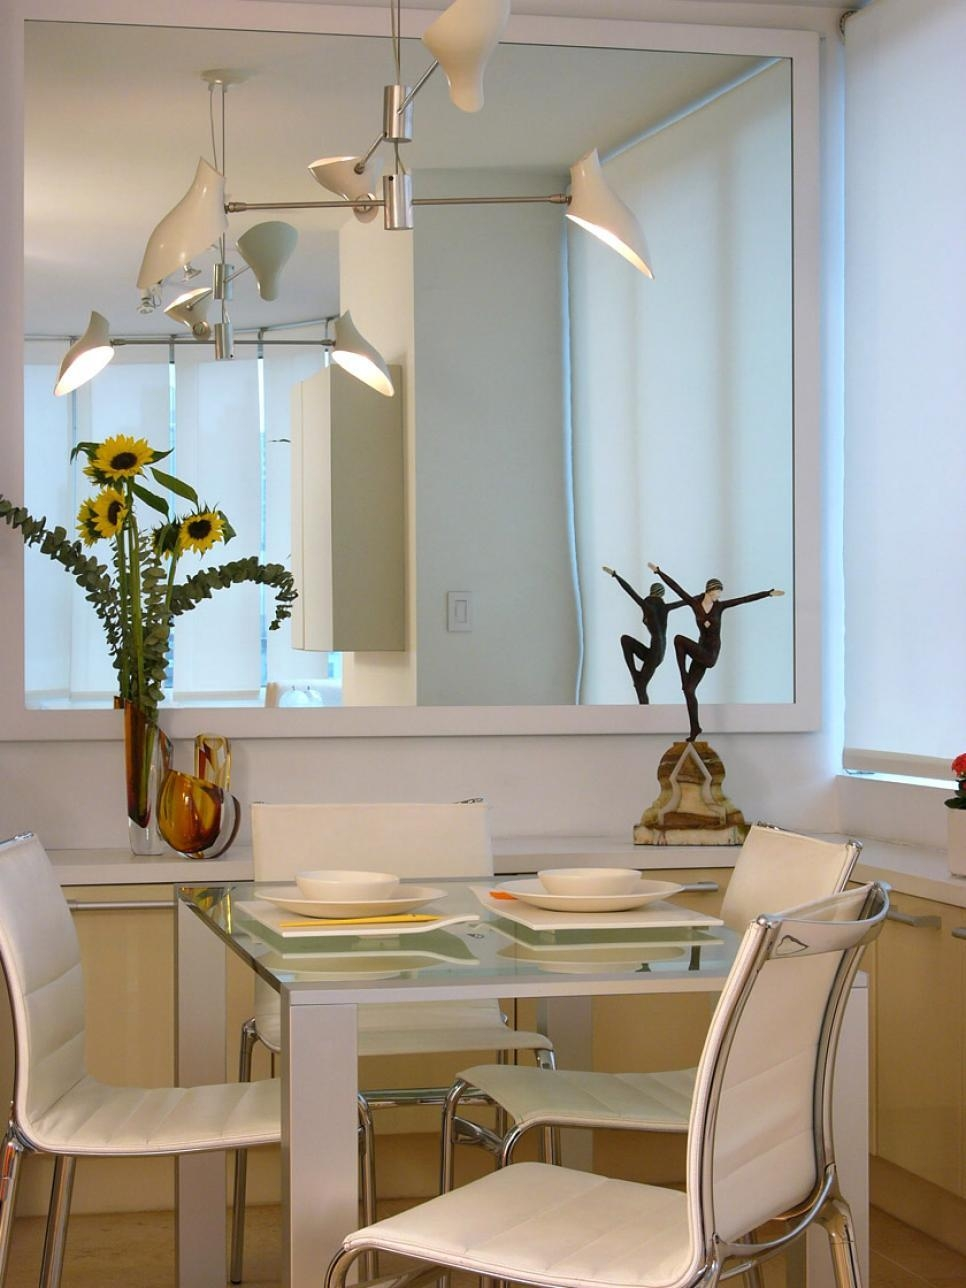 Decorating With Mirrors | Hgtv With Regard To Walls Mirrors (View 4 of 20)